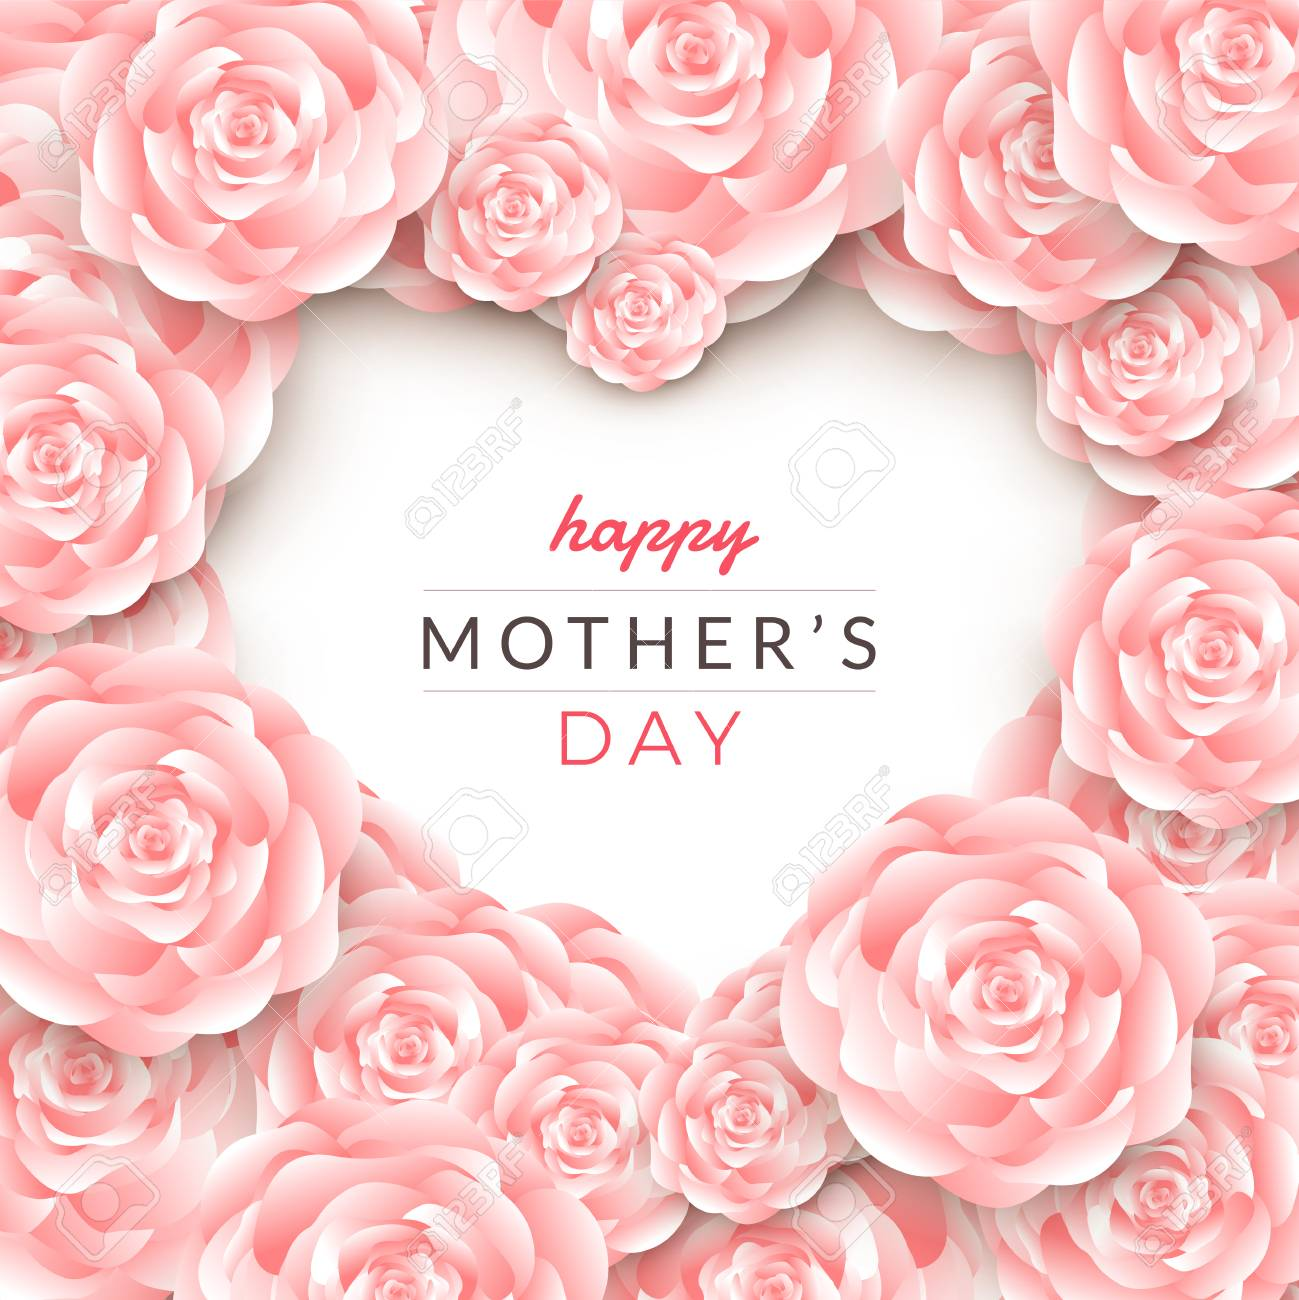 Happy mother's day layout design with roses, lettering, paper cut and texture background. Vector illustration. - 102336717